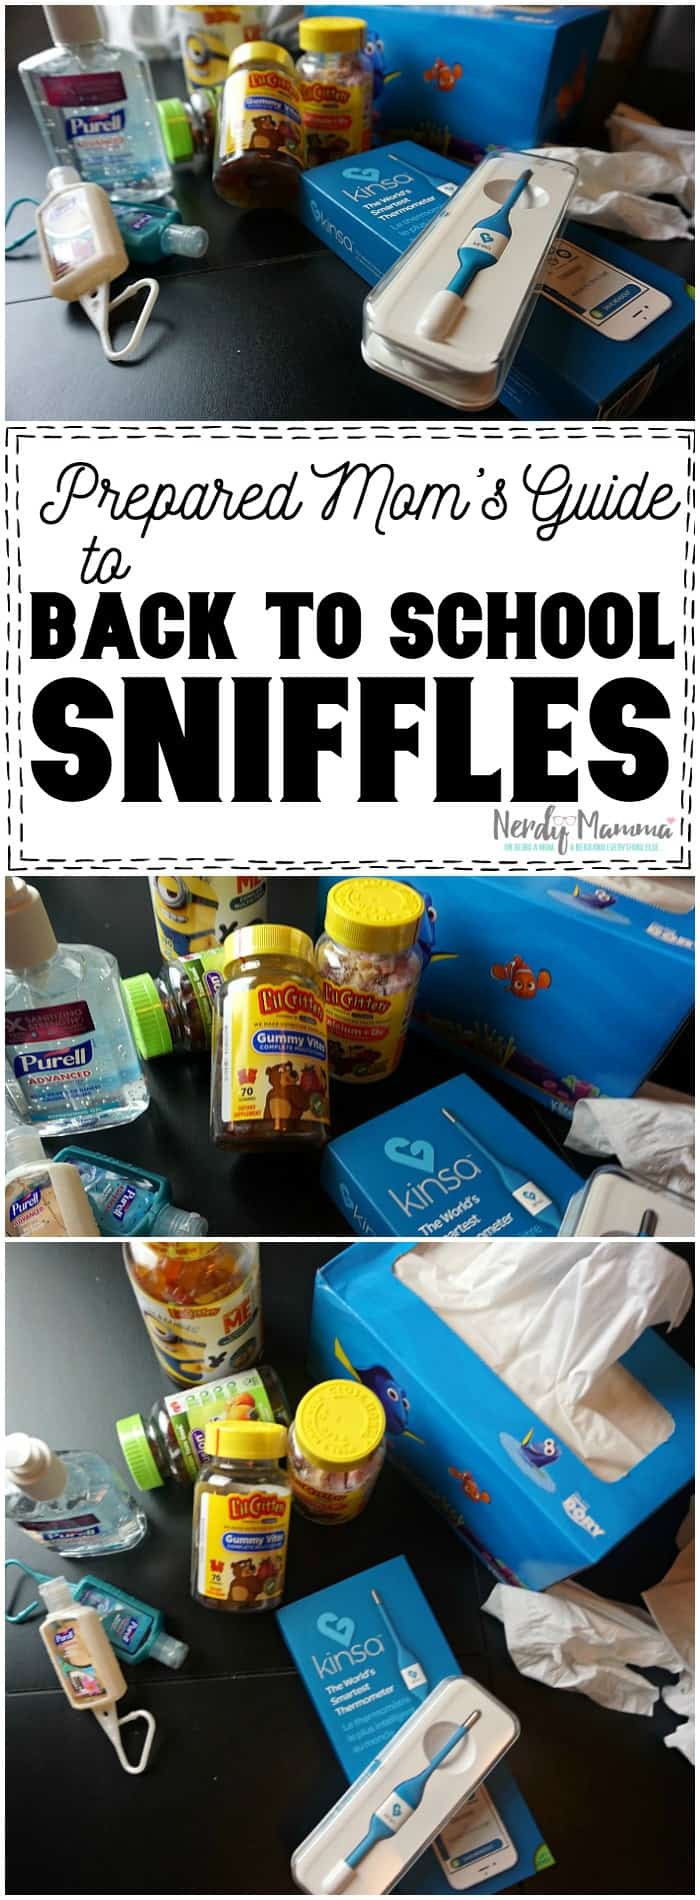 Oh, these ideas for being prepared for the back to school sniffles is so comprehensive...Love it!